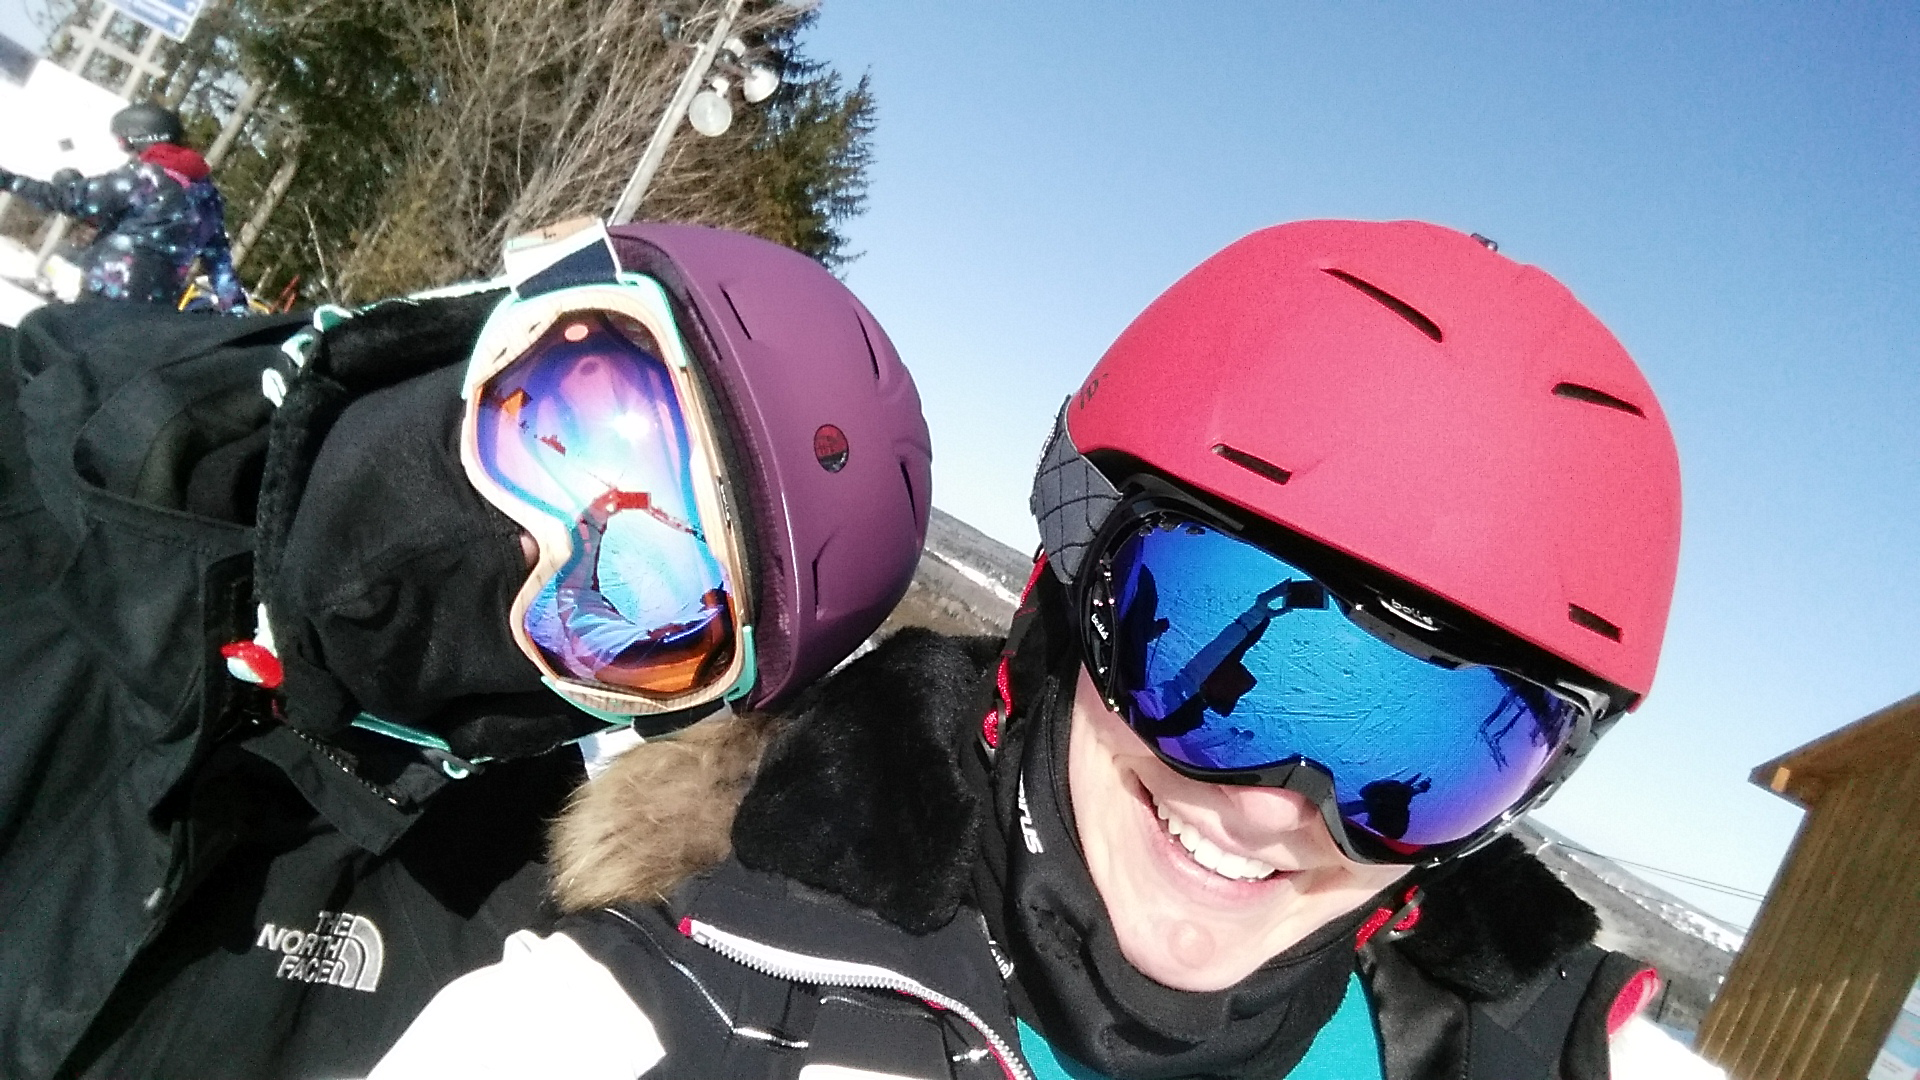 822f8b4aa6a2 Bolle goggles and helmet fit for women. Heaher and I went skiing together  ...